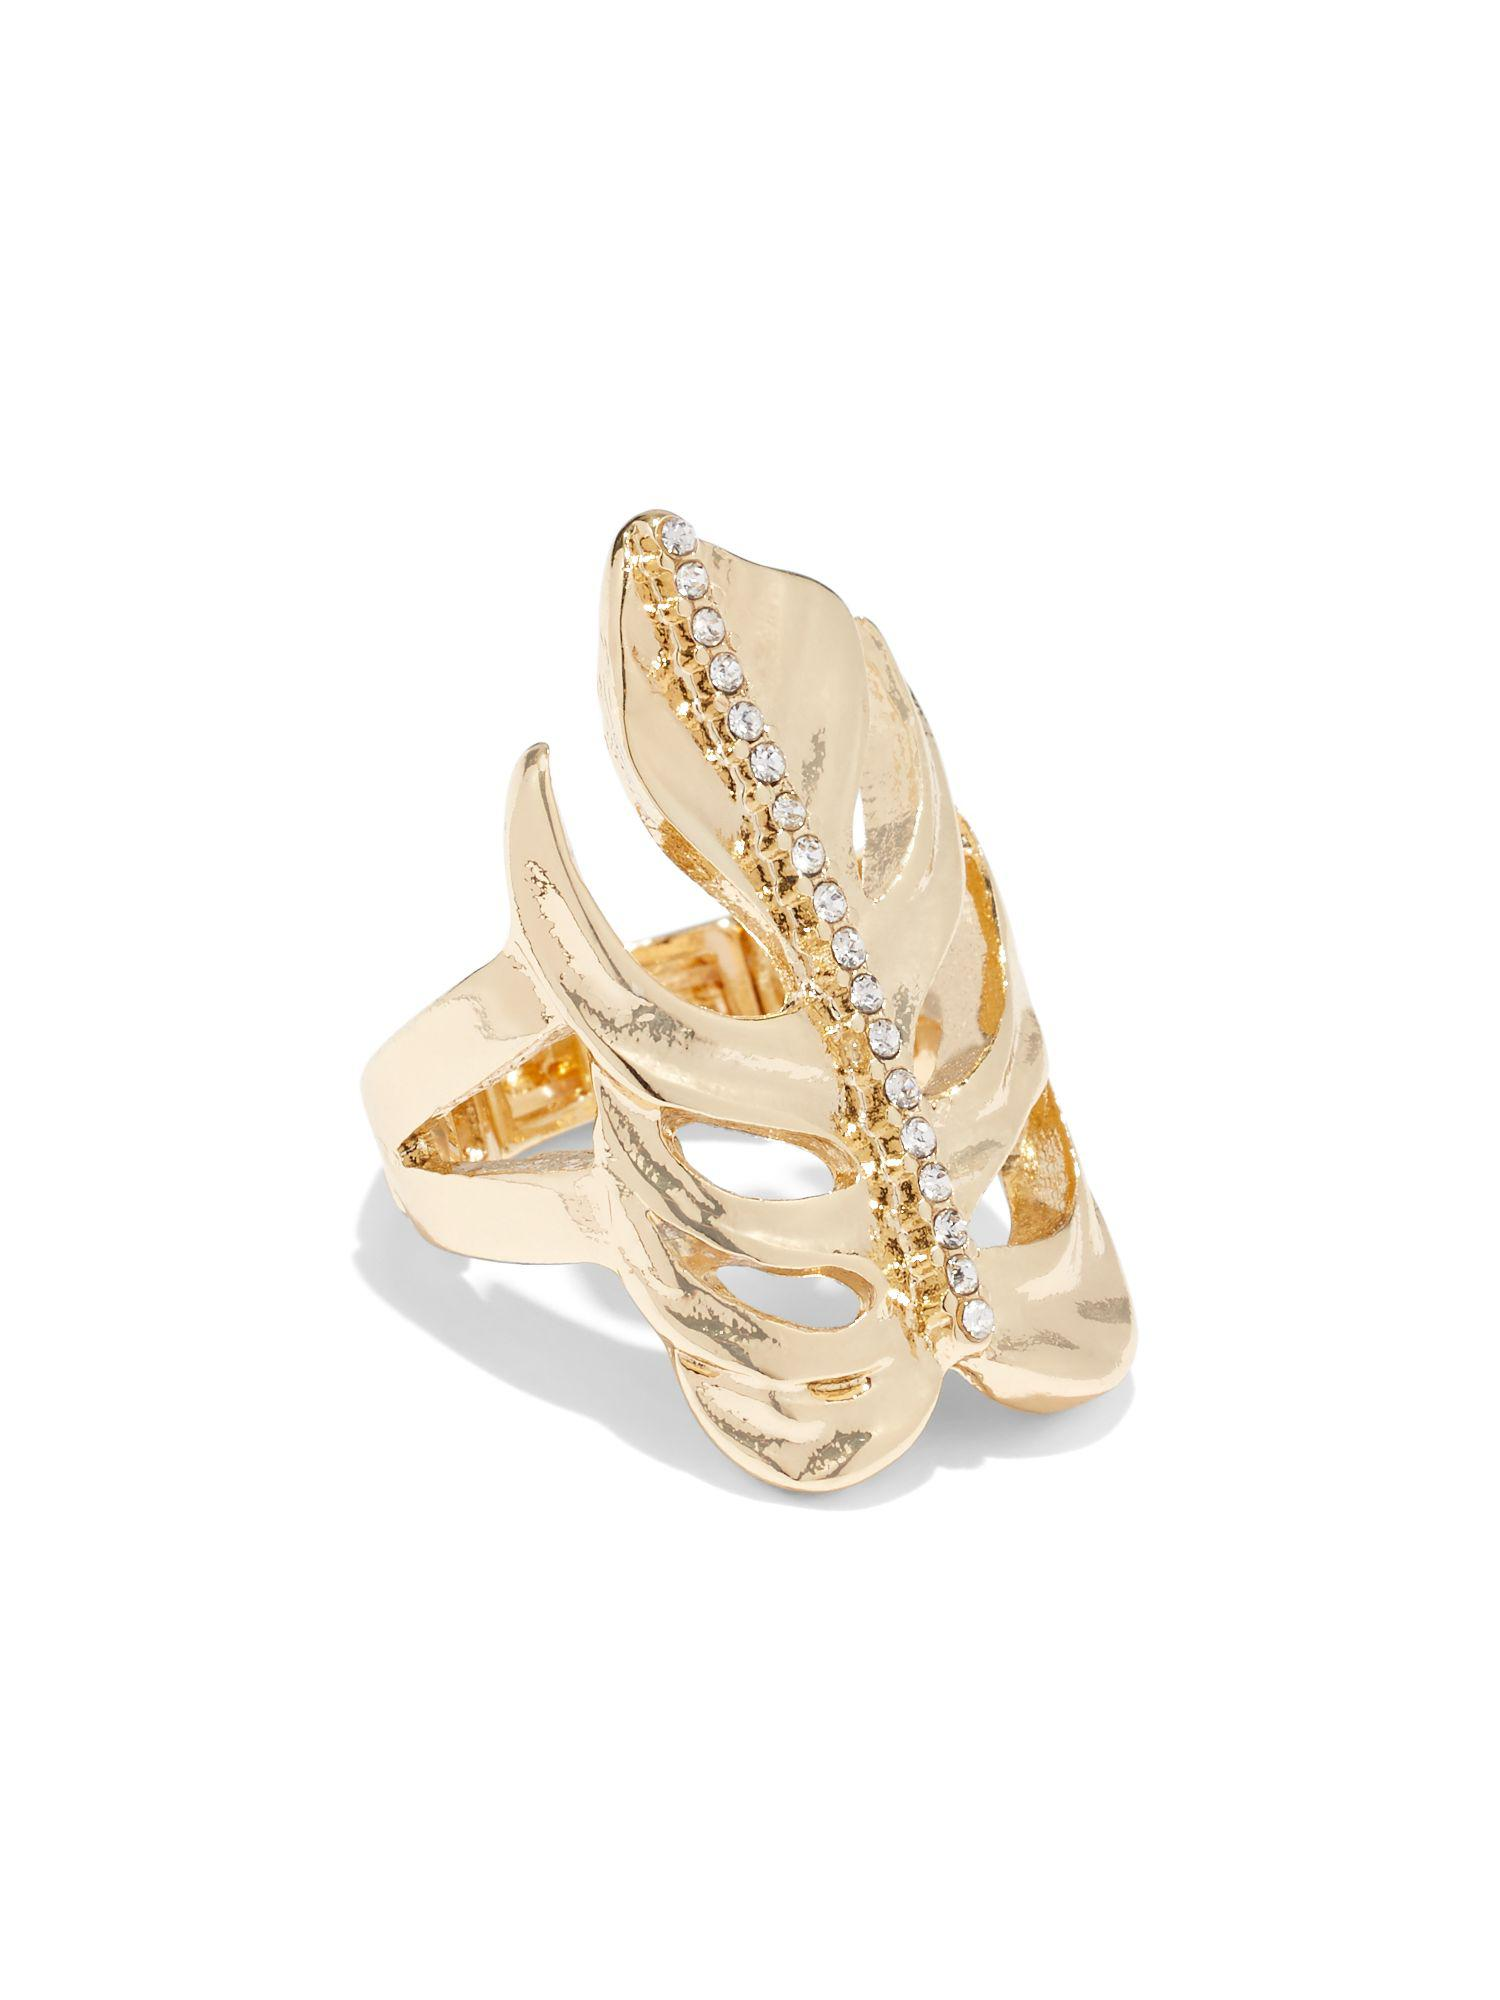 lyst new york pany goldtone palm leaf ring in metallic Flower and Leaf Ring gallery